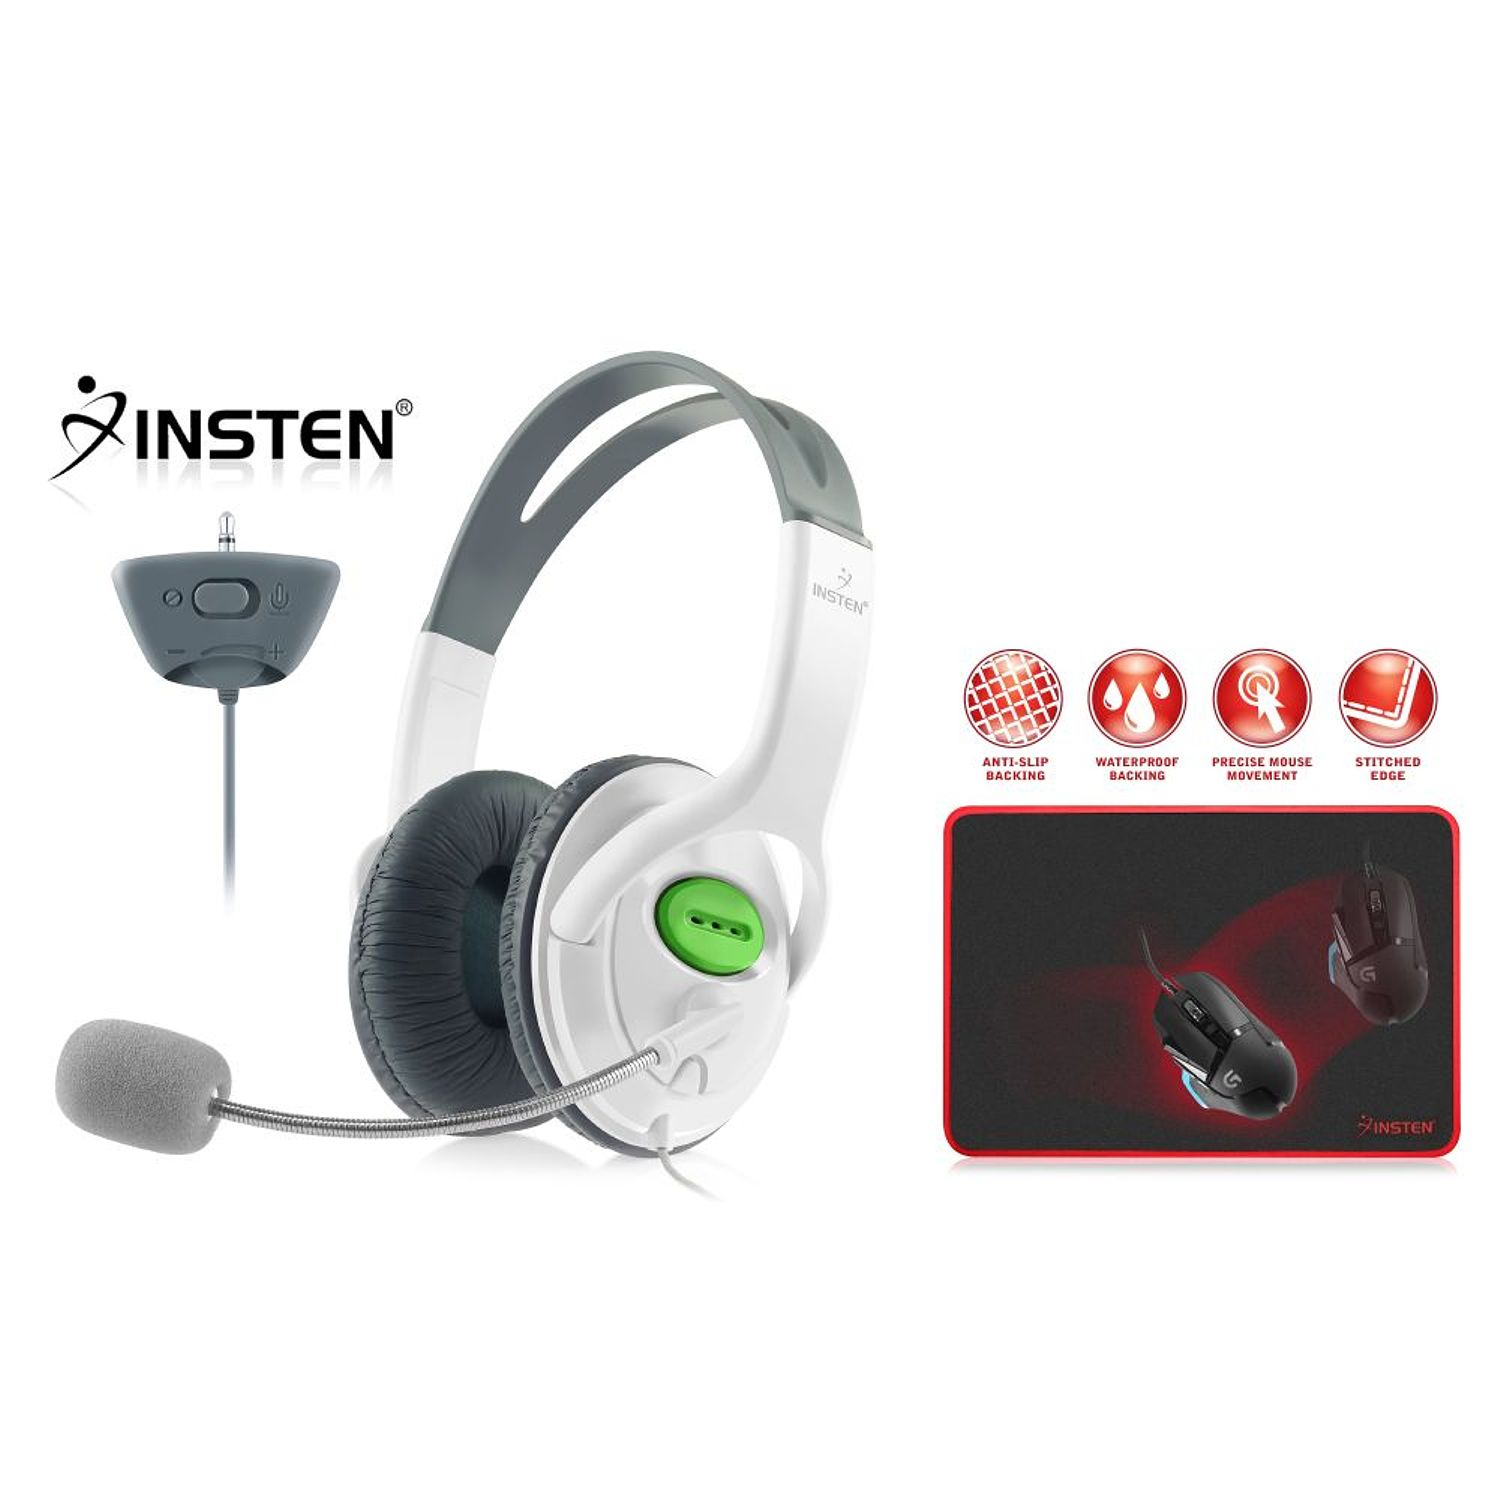 "Xbox 360 Headset with Mic Xbox 360 Headphone by Insten Gaming Headset with Mic For Microsoft Xbox 360 / Xbox 360 Slim (Live Chat Microphone) + Gaming Mouse Pad Mat (13.8 x 10.2"")"